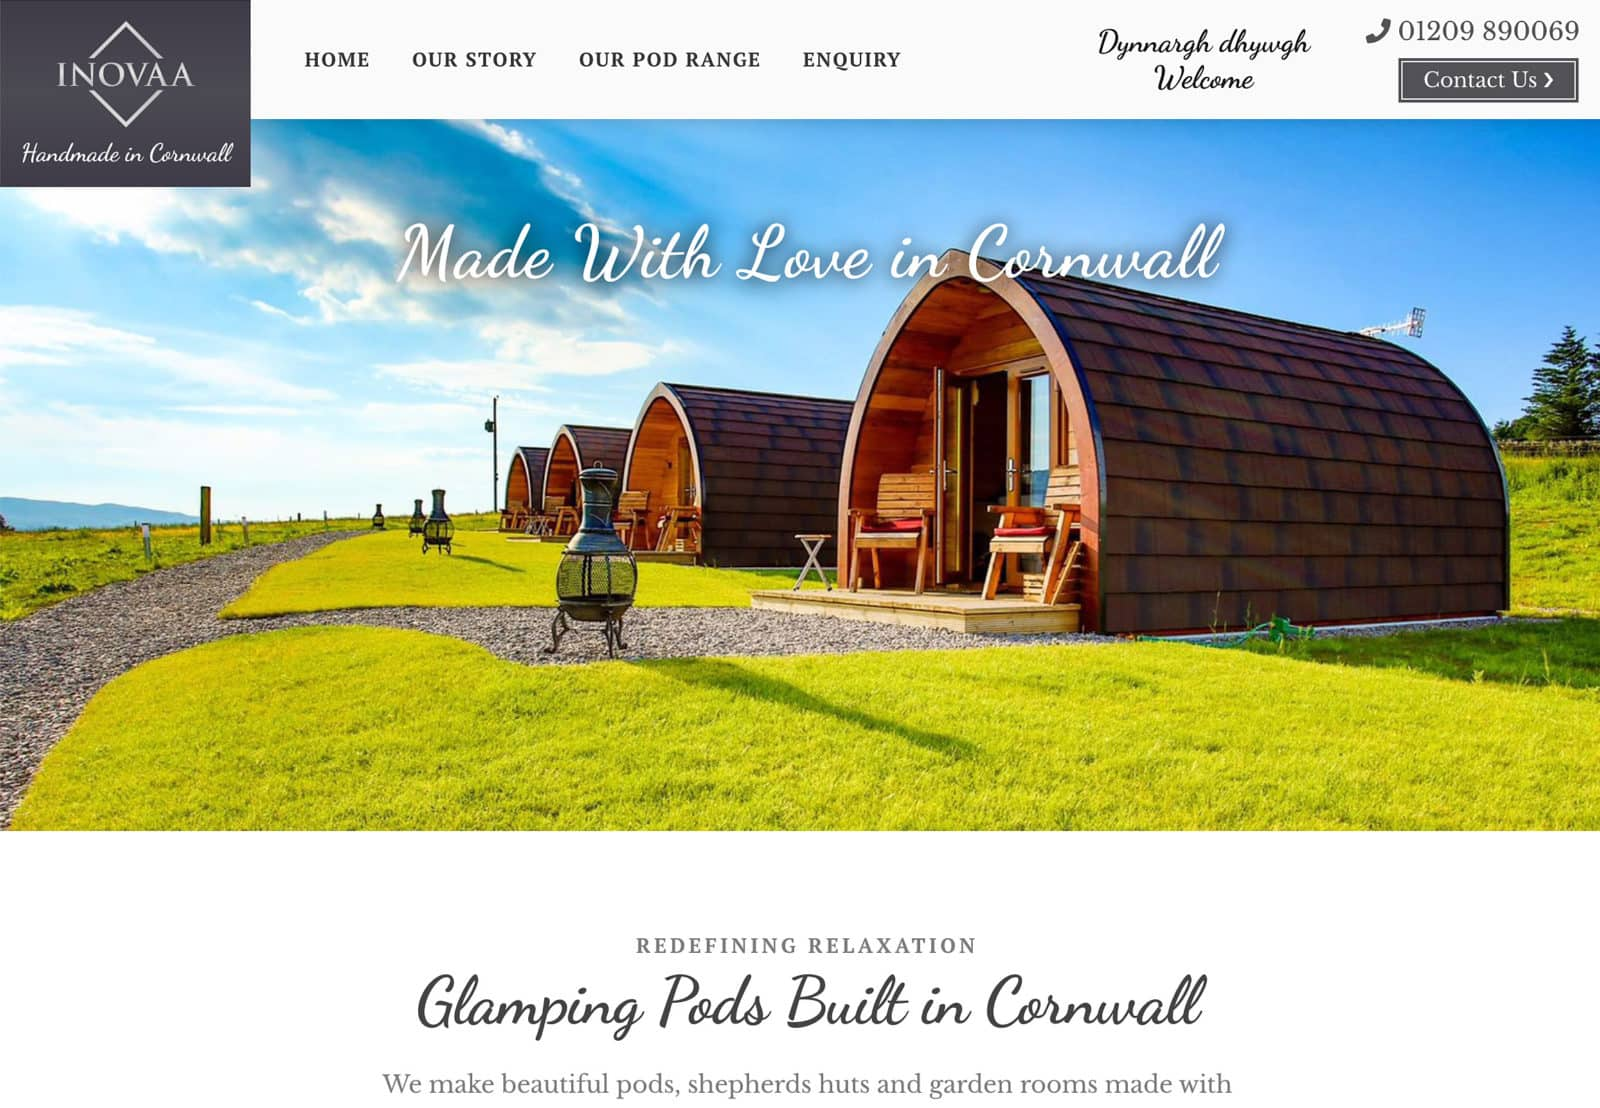 Website Design for Inovaa Glamping Pods